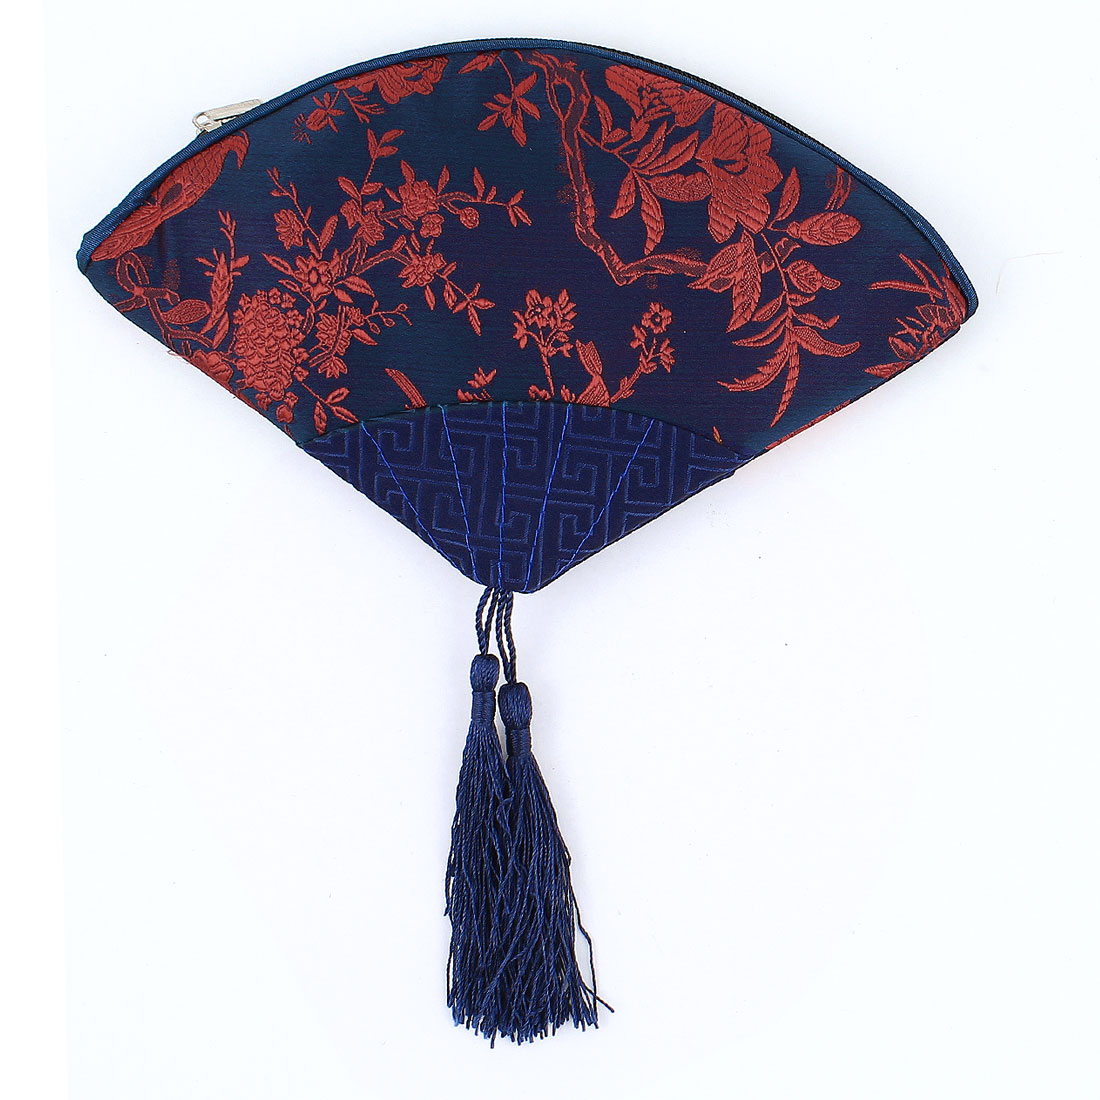 Women Fan Shaped Embroidery Floral Pattern Tassels Decor Zip up Cash Coin Key Purse Red Dark Blue